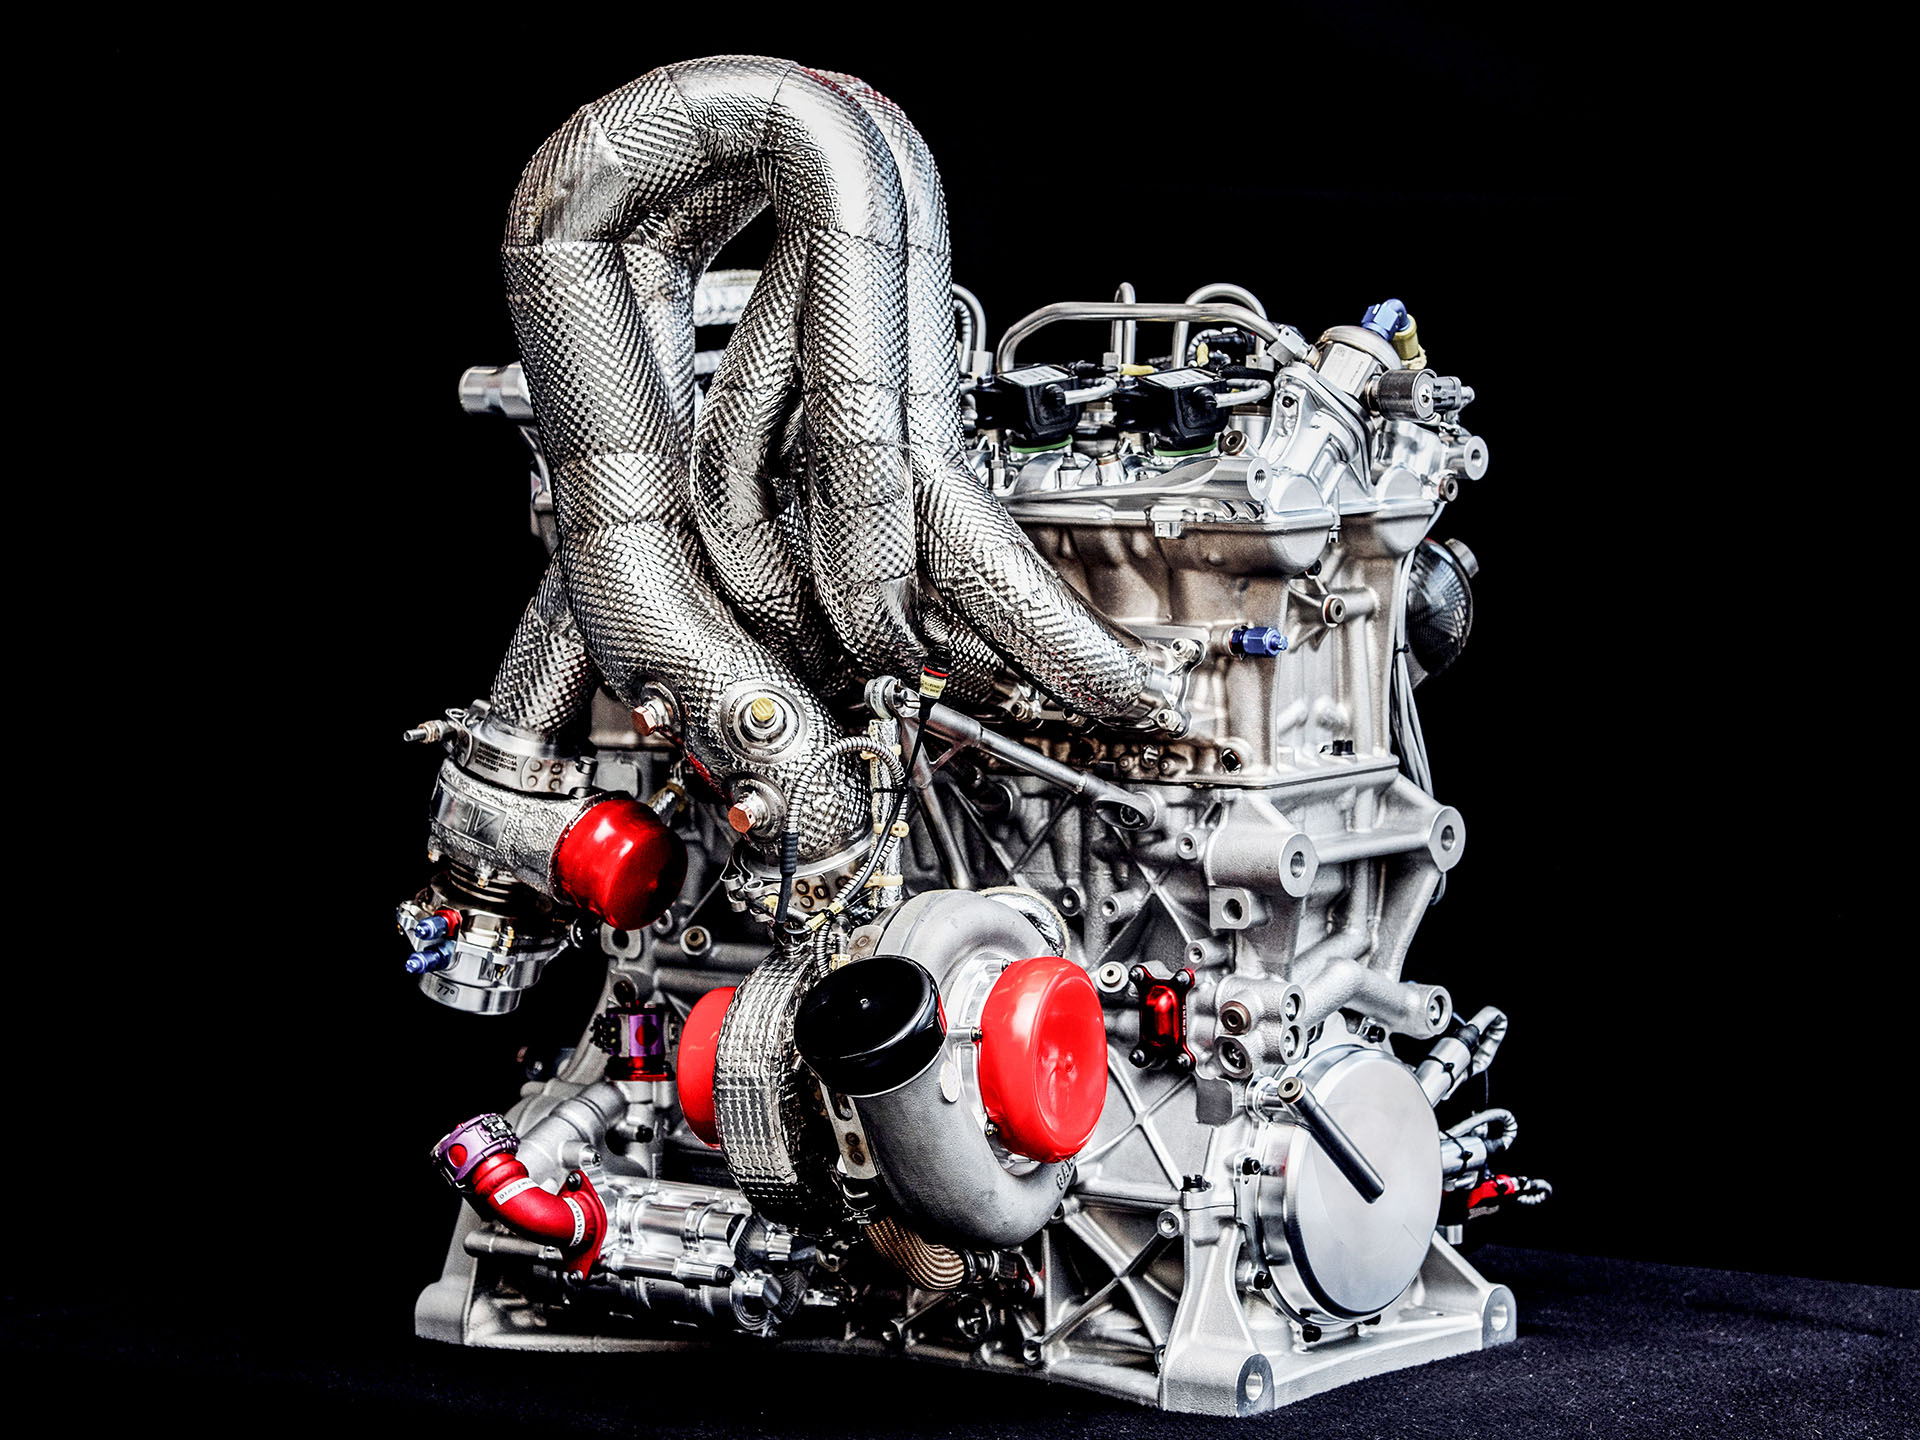 Engine of Audi RS 5 DTM